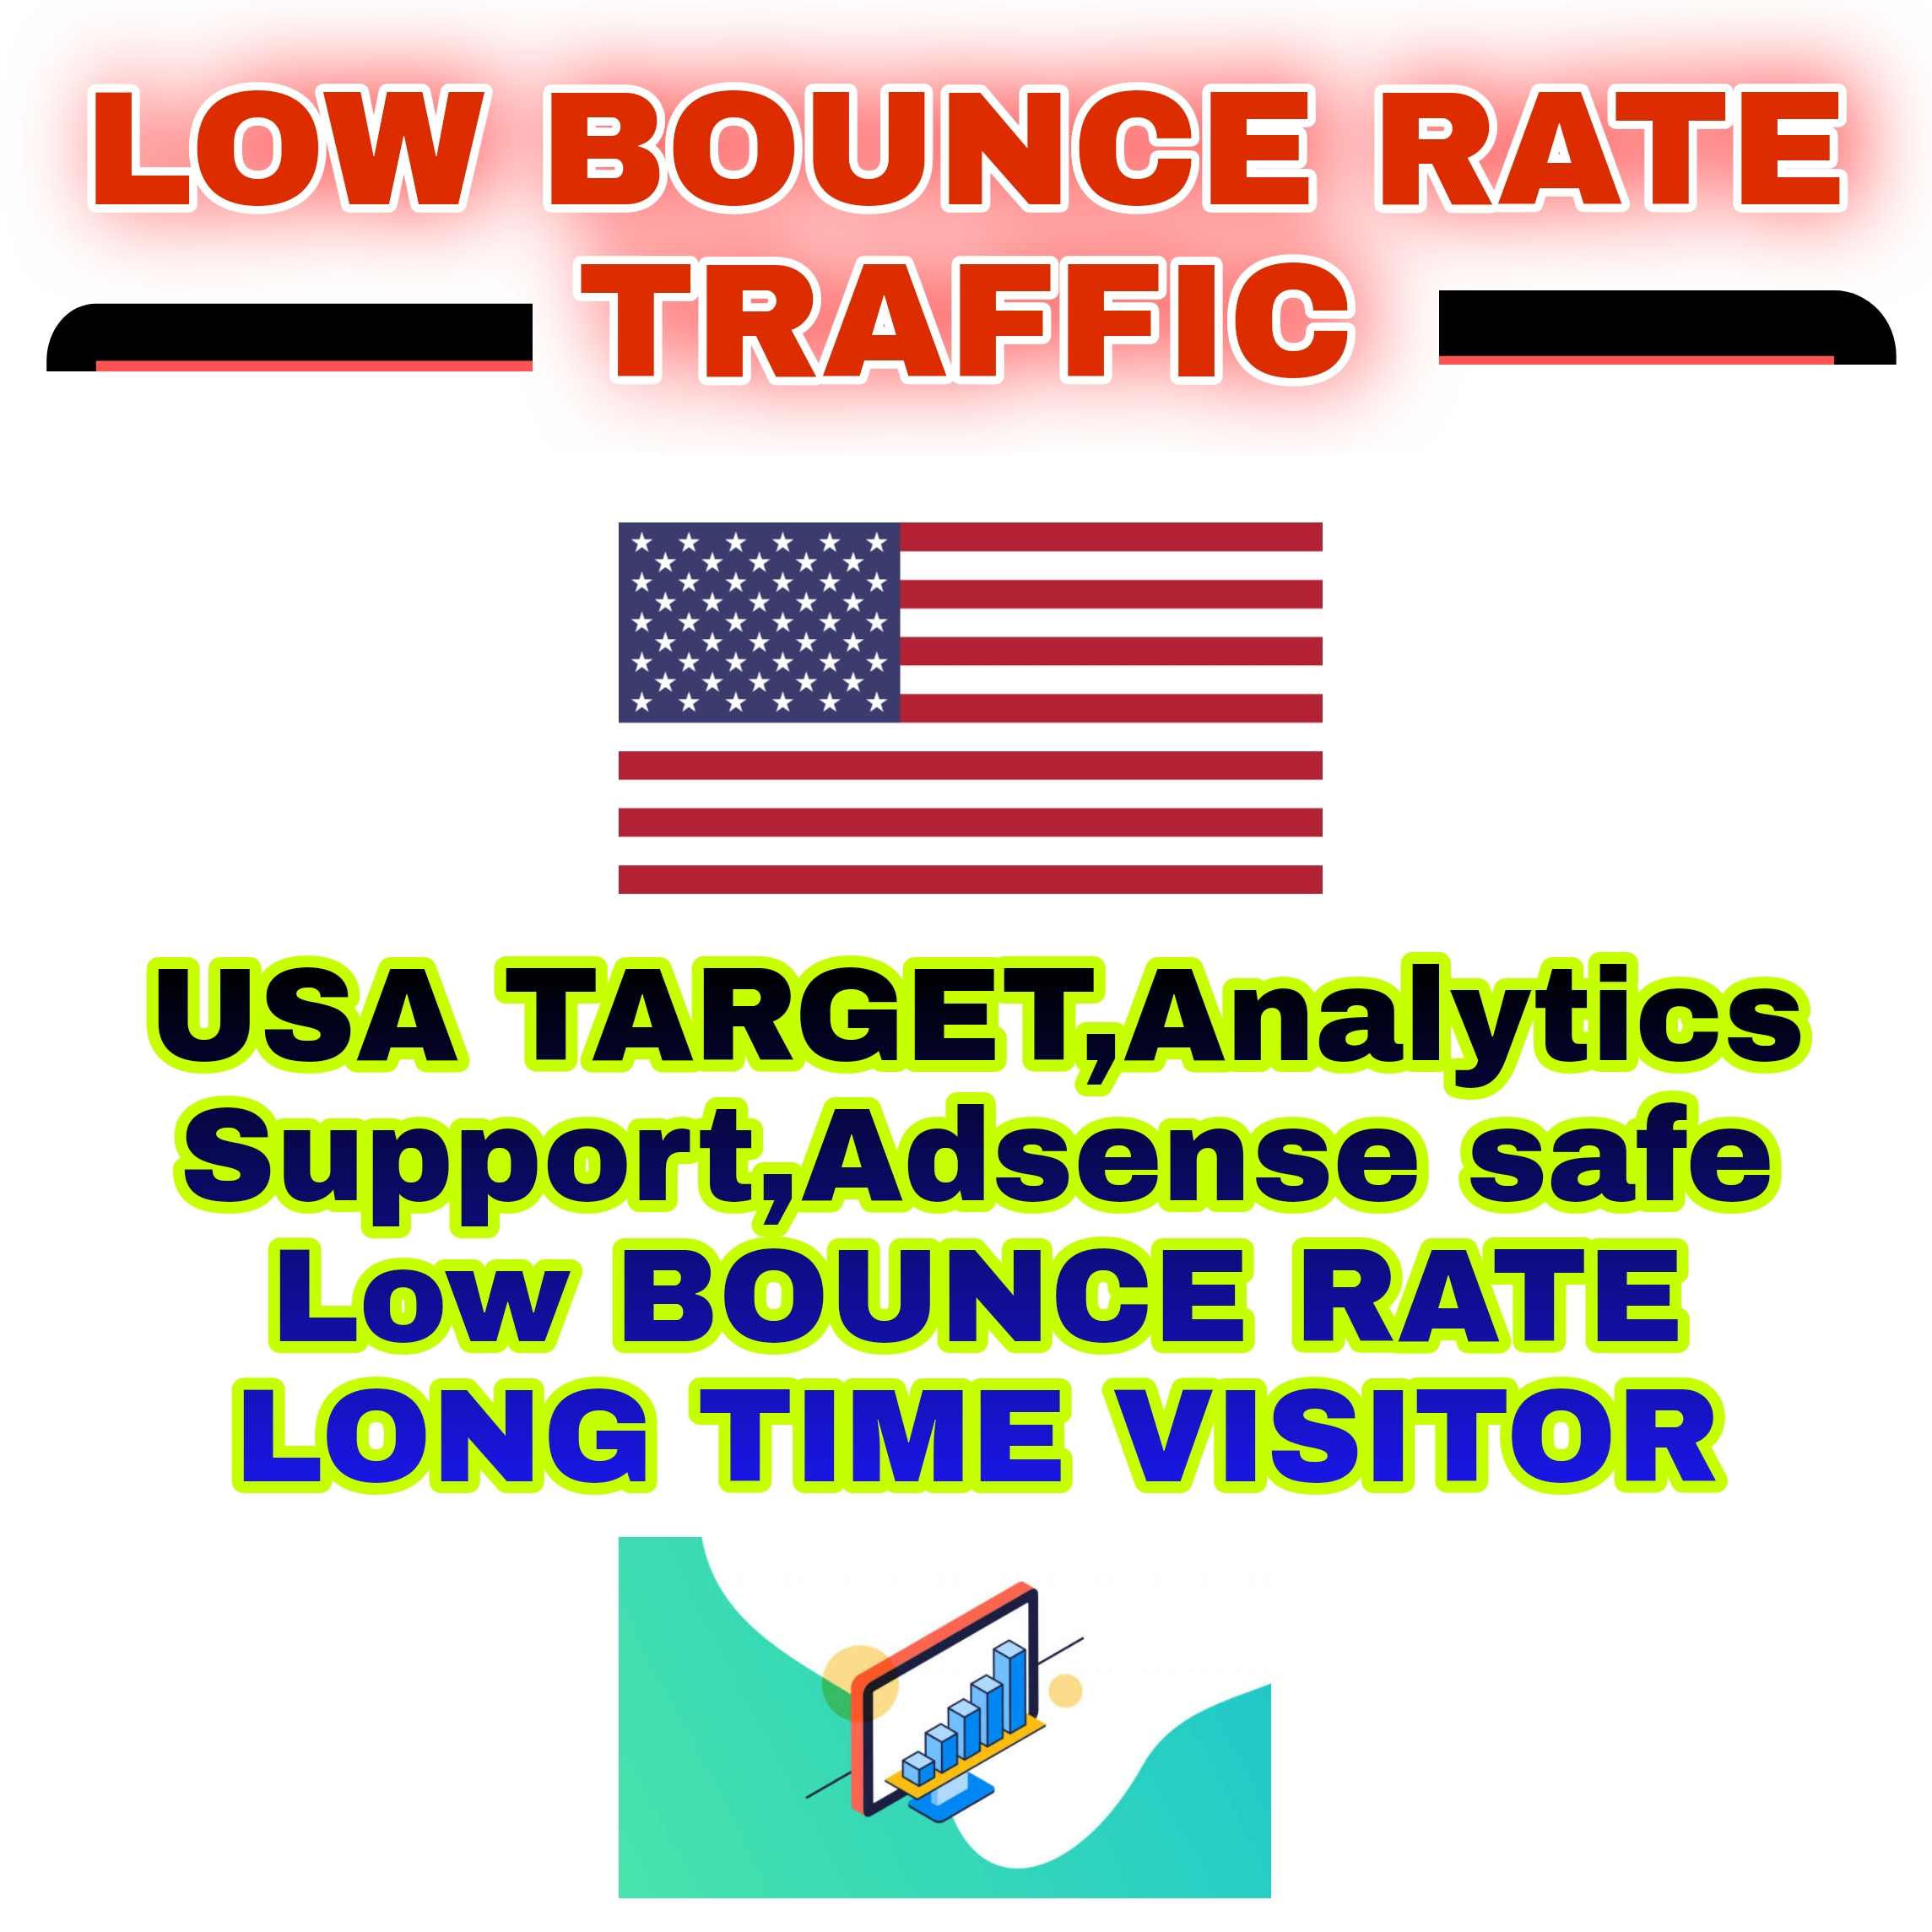 1000 Real & High Quality Usa Target Web Traffic - Adsense Safe,analytic Support